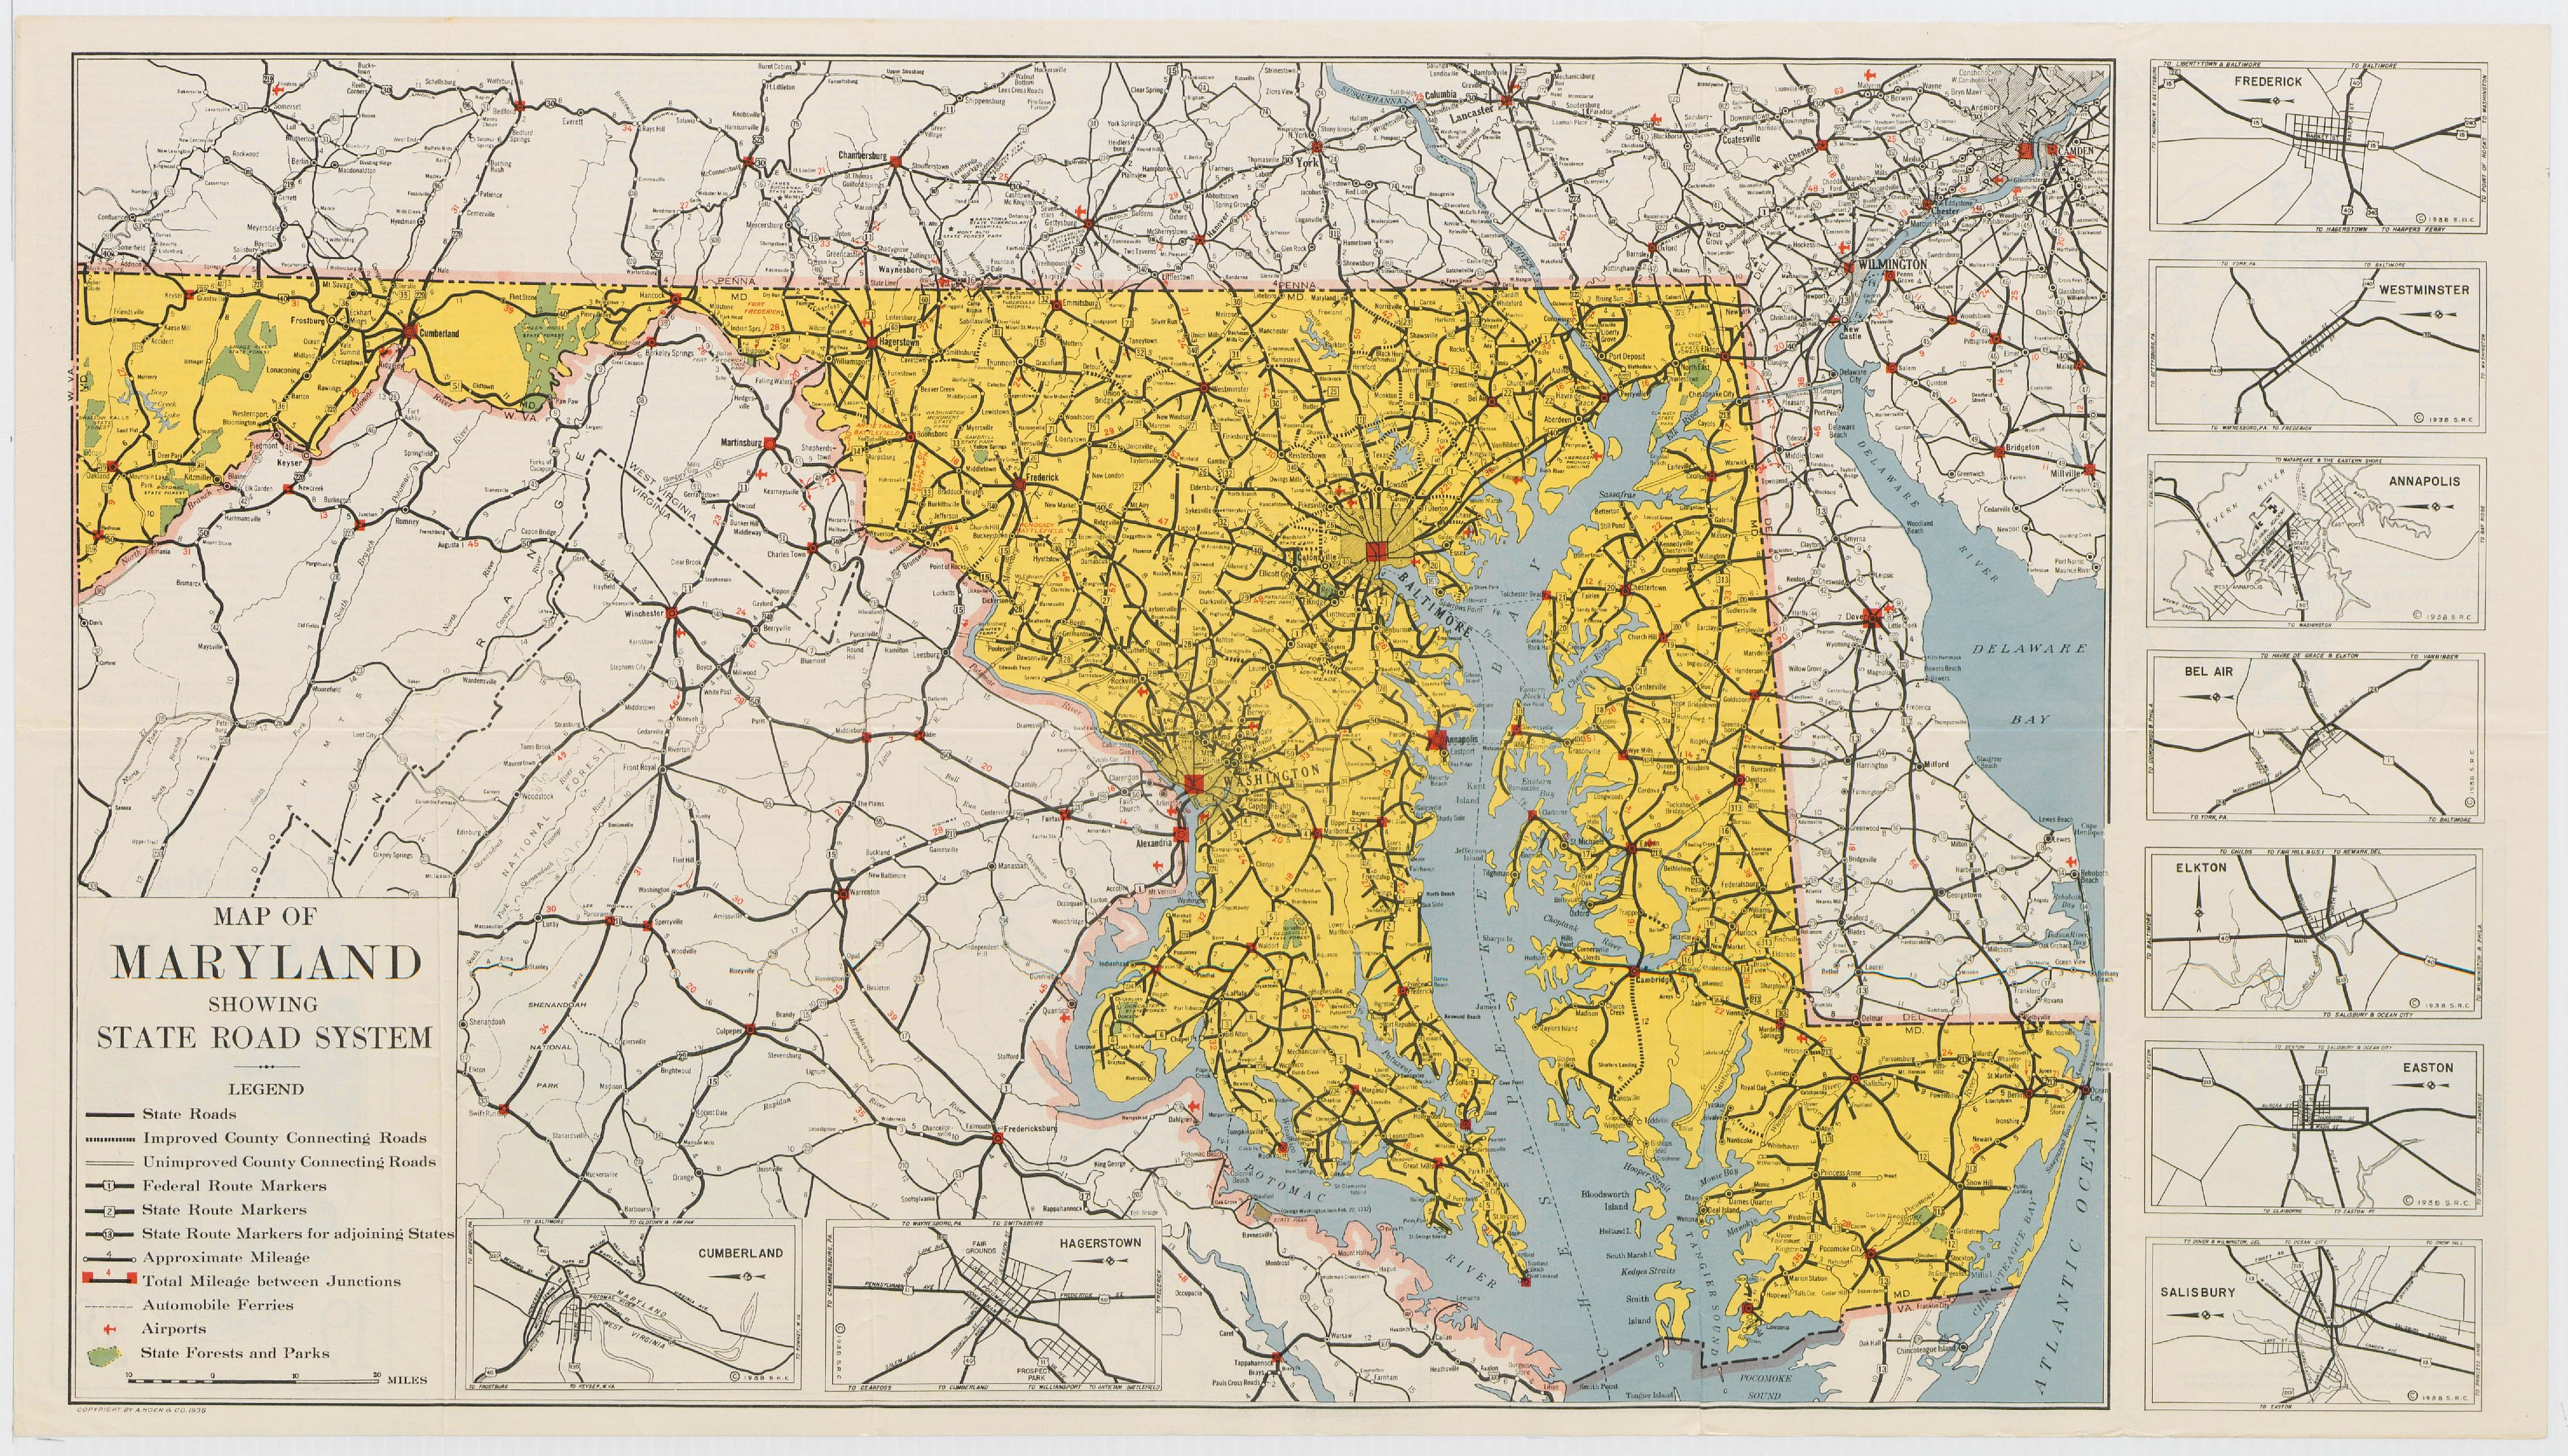 FileMaryland State Highway Map Pdf Wikimedia Commons - Road map of maryland